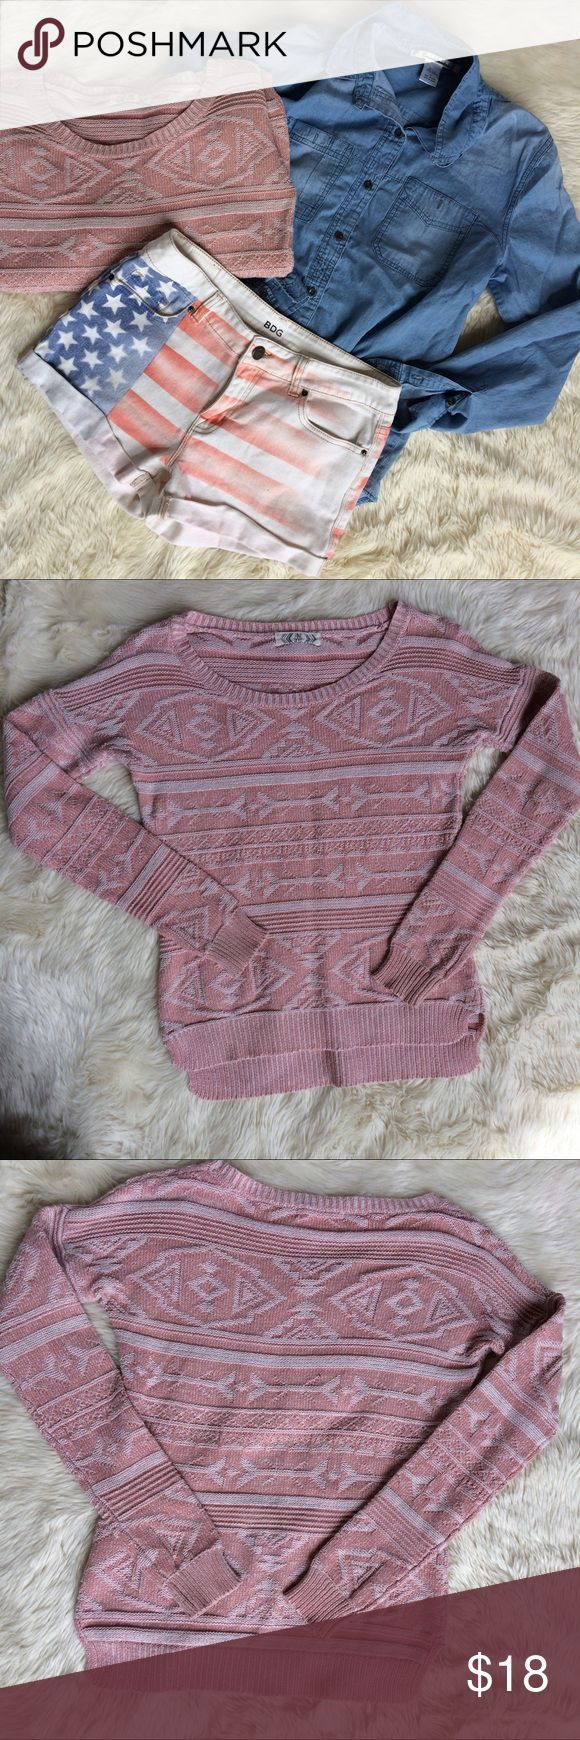 Aztec tribal print sweater dusty rose sz S No snags or pilling. Nearly new condition. Pink Rose Sweaters Crew & Scoop Necks